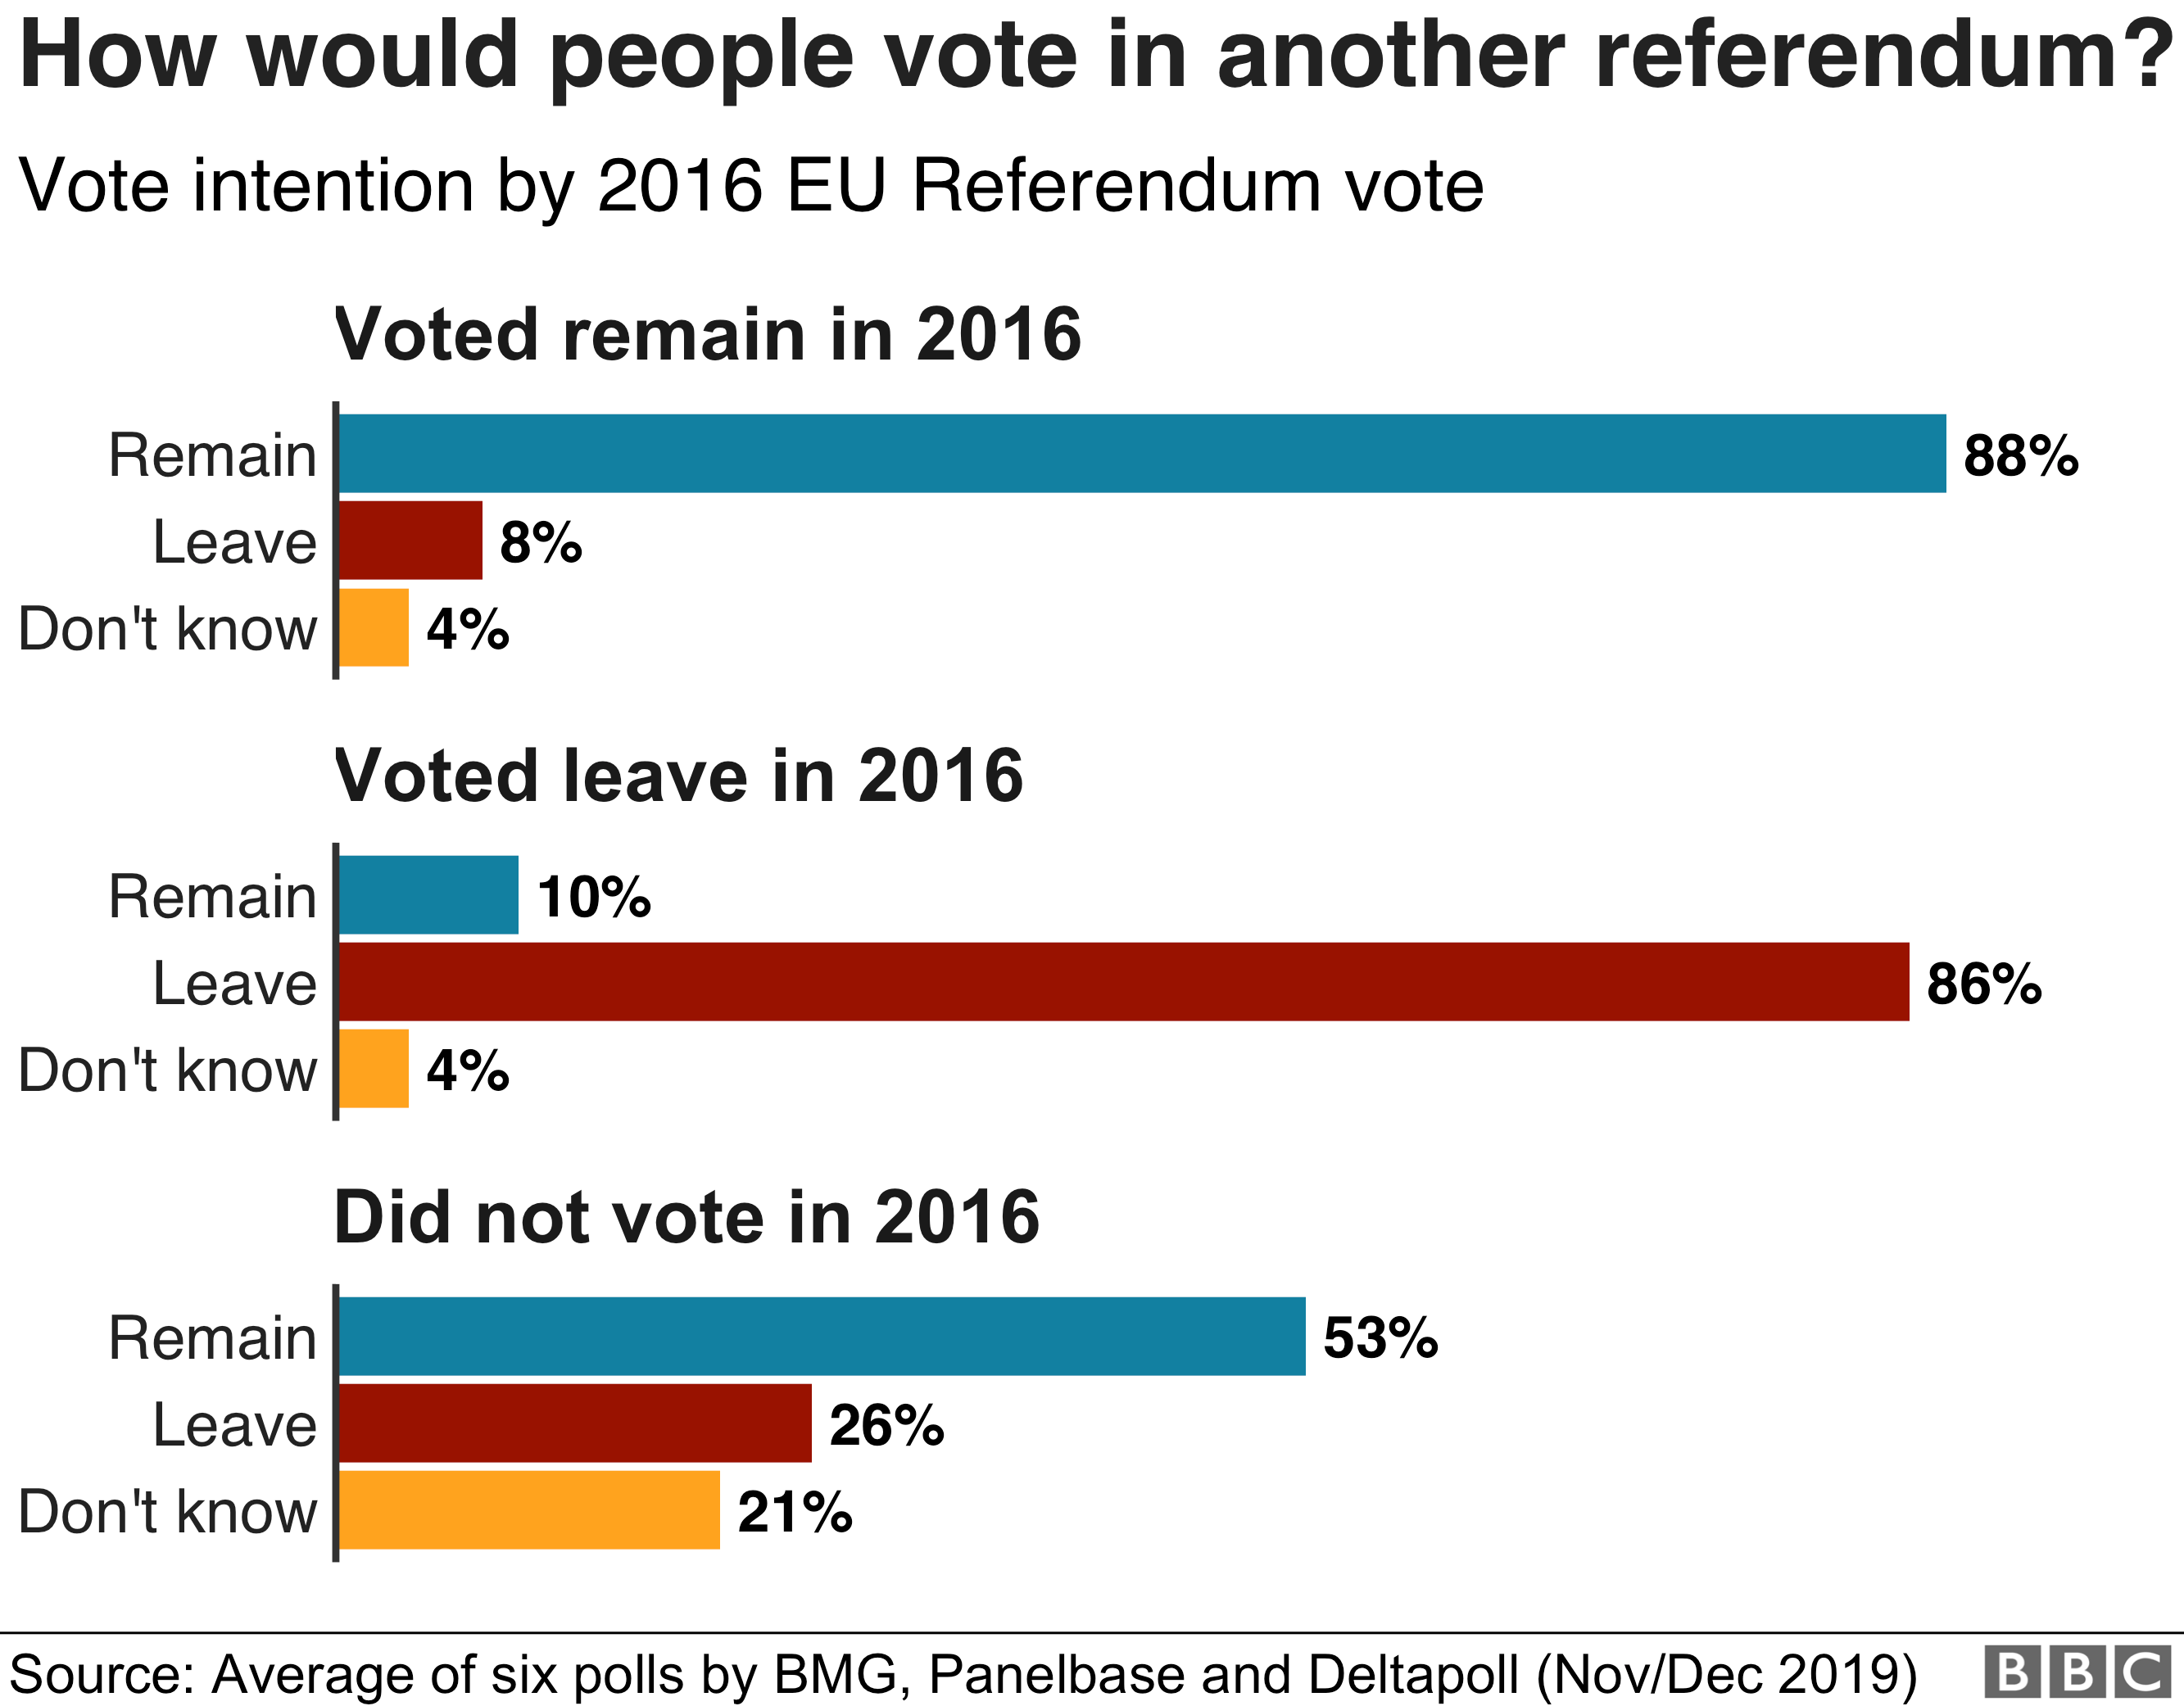 How people would vote in another referendum